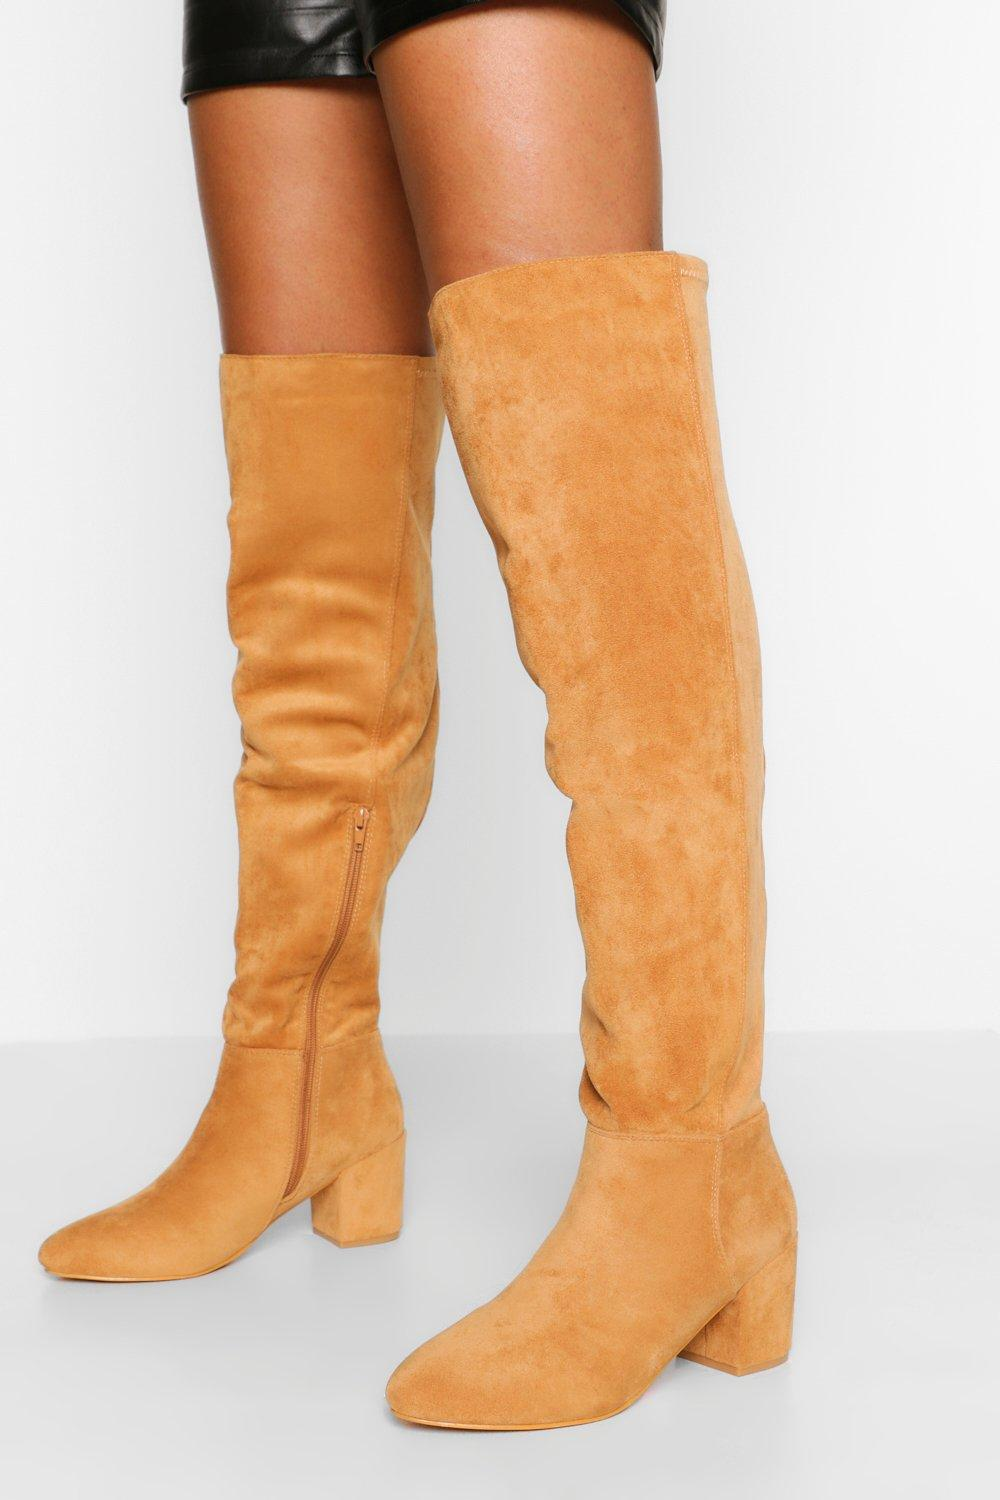 Vintage Boots, Retro Boots Womens Wide Fit Block Heel Stretch Over The Knee Boot - Brown - 10 $38.00 AT vintagedancer.com